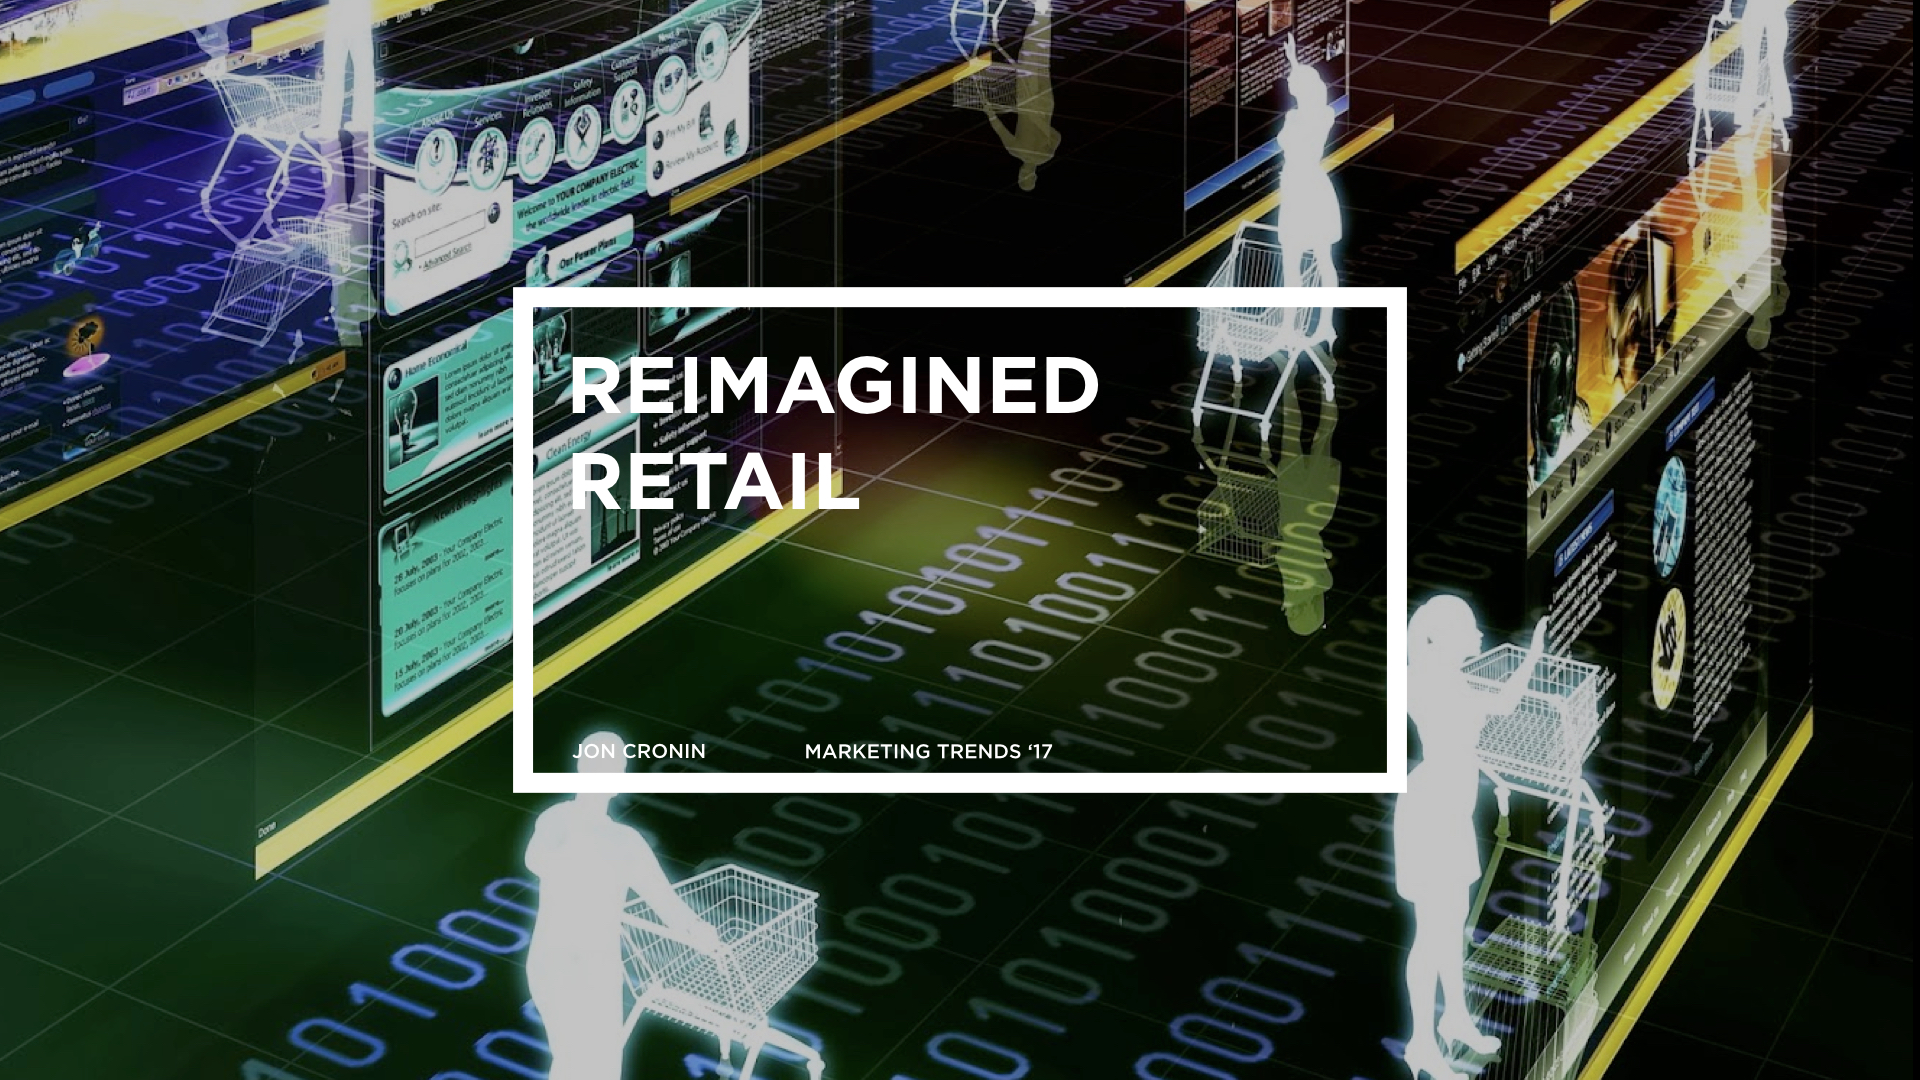 Marketers must tell stories across all retail touch points and all  c  ontent m  ust s  ell by being connected to a direct path to purchase. Retail brands will immerse potential customers into their ecosystem of social content, influencers, product experts, loyalty tools, AI bots and REAL customer service people. The ability to buy at any point online and/or walk out of the store frictionless like Amazon Go will transform retail forever. Stores will feel more like home, inviting people to relax, touch and talk to knowledgeable staff all while incorporating their mobile device in a sophisticated but simple customer experience. The future of retail is the future of technology.